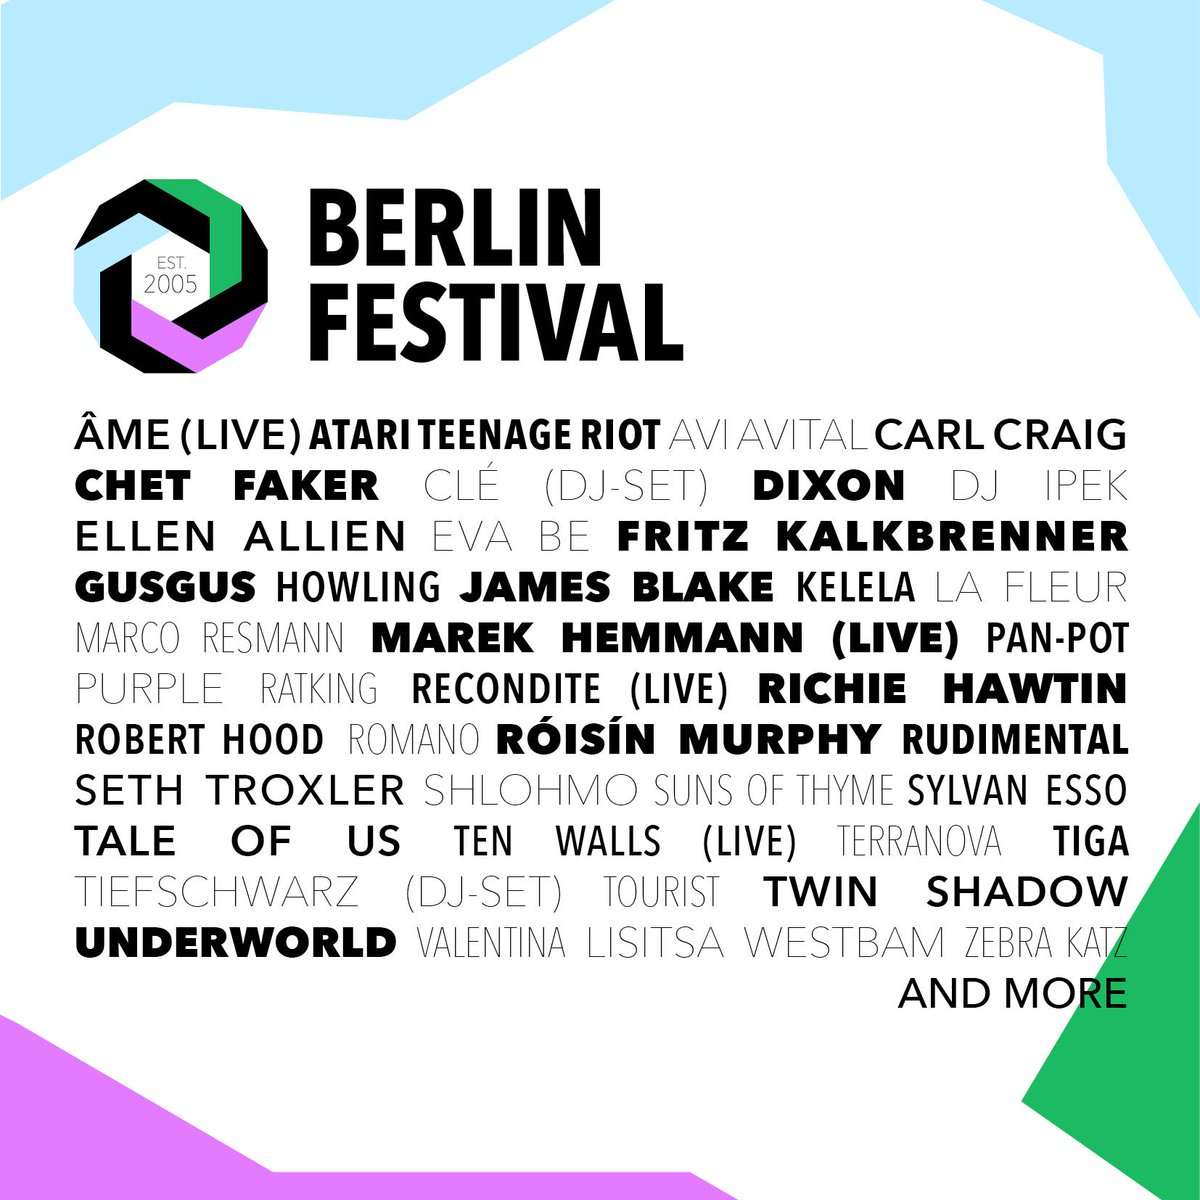 It's on!!! http://t.co/acMfStvjqC #berlinfestival http://t.co/561wqDDXIC